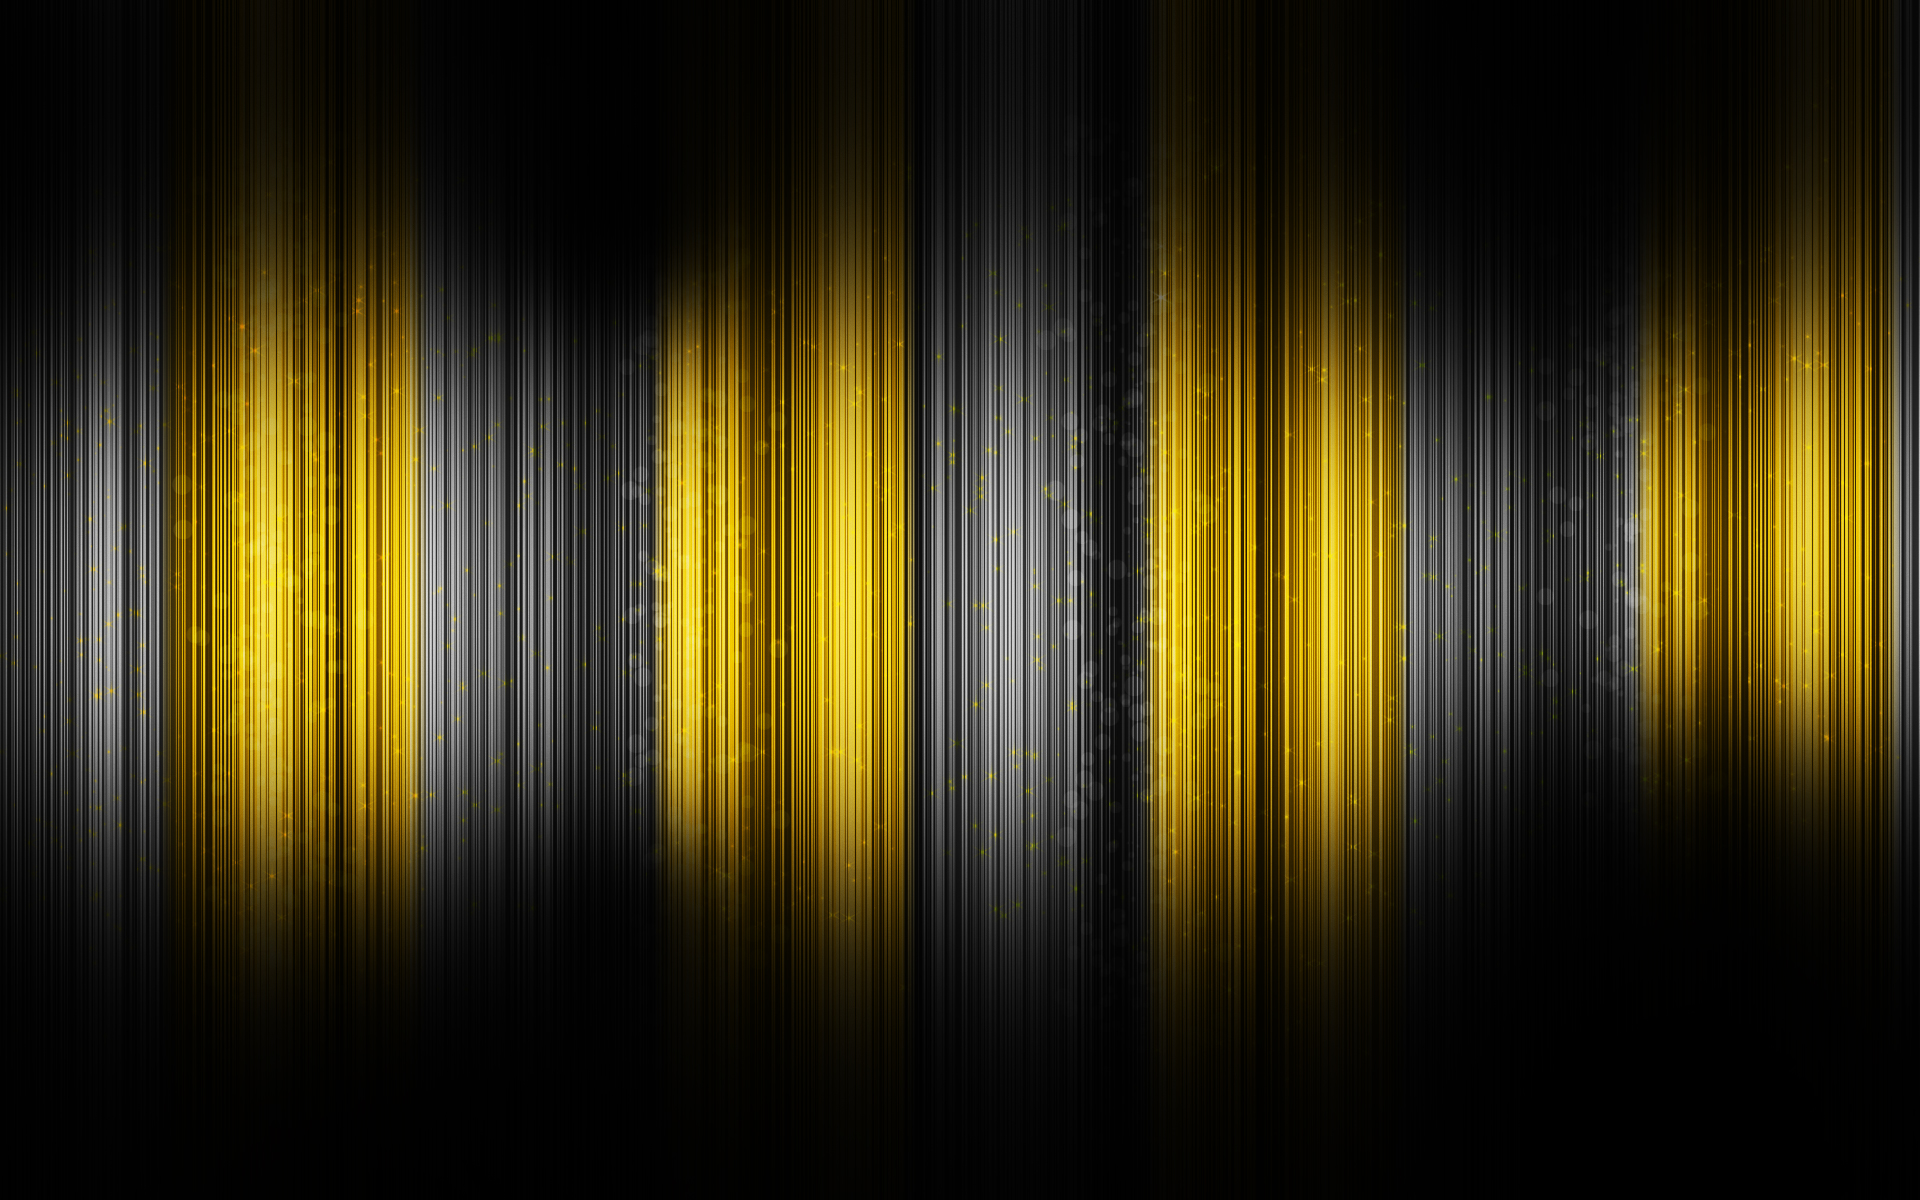 48 Black And Yellow Hd Wallpaper On Wallpapersafari